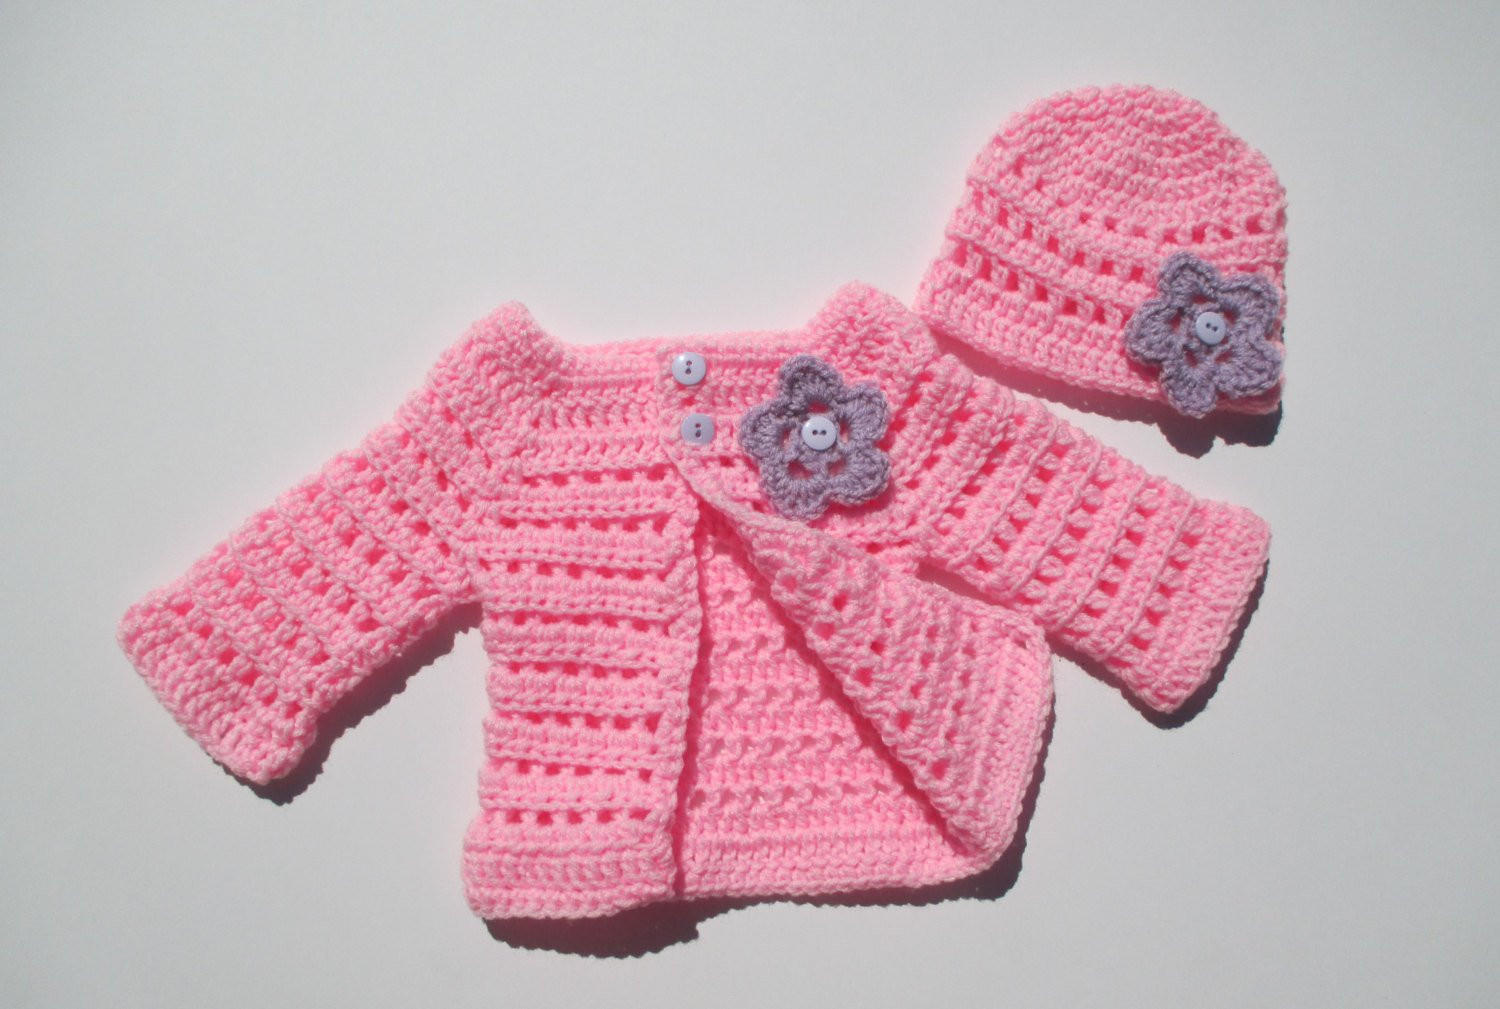 Crochet Baby Sweater Unique Crochet Baby Sweater Set Crochet Baby Cardigan Baby Clothes Of Charming 44 Images Crochet Baby Sweater